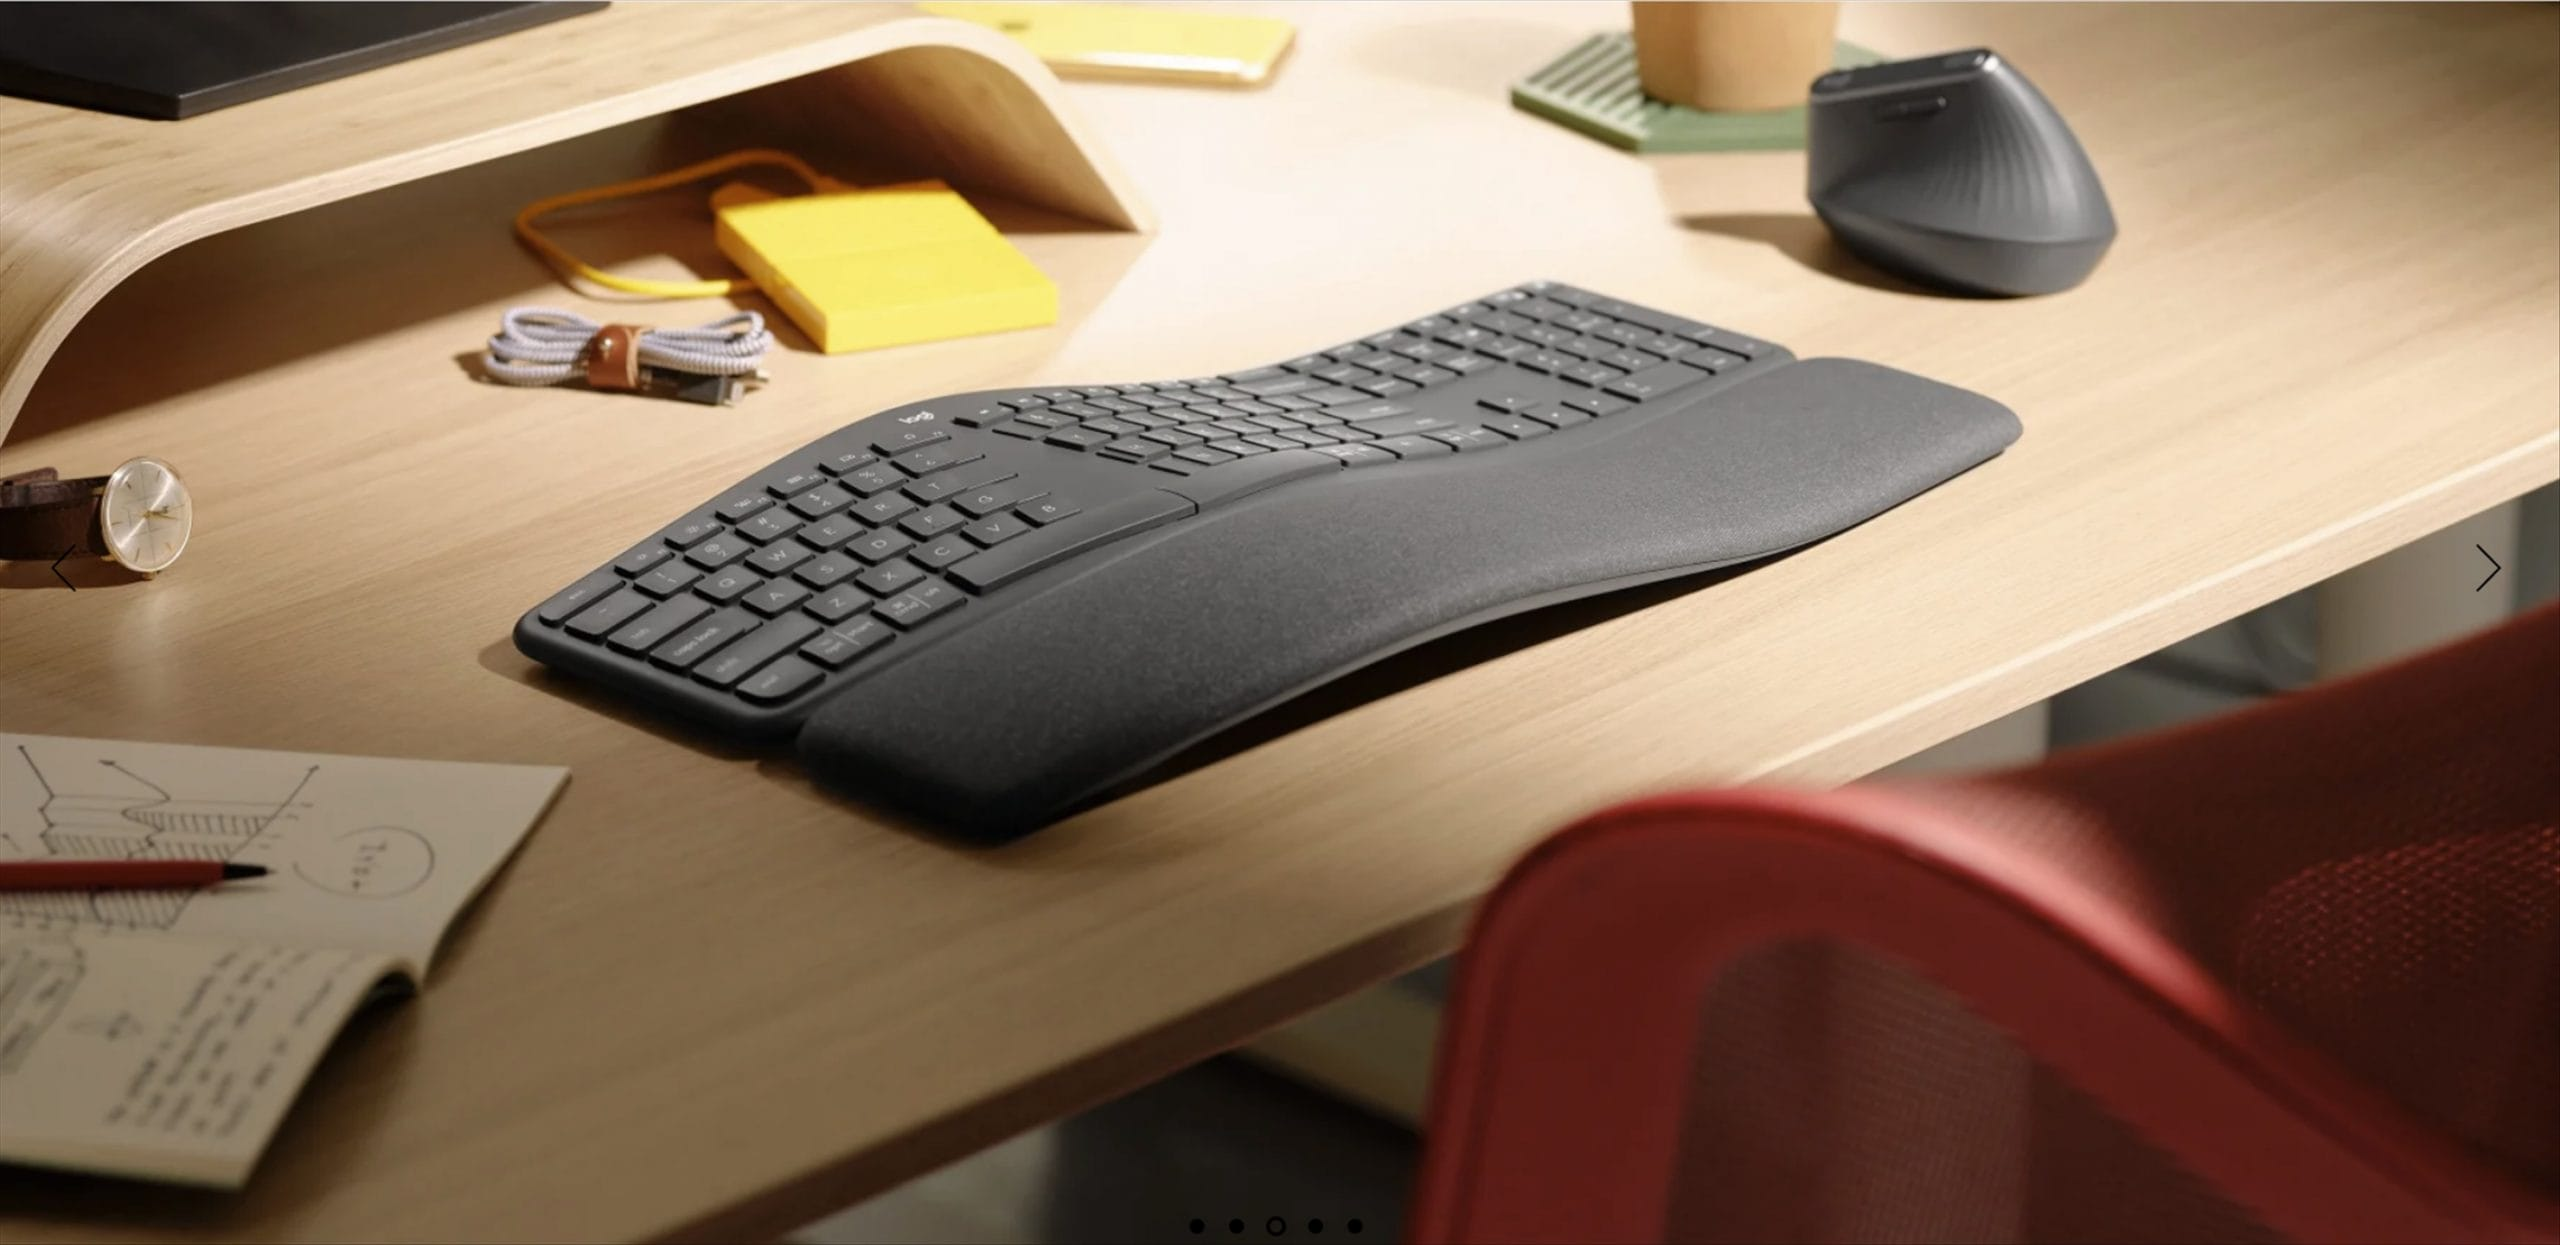 This Ergonomic keyboard supports working with a standing desk